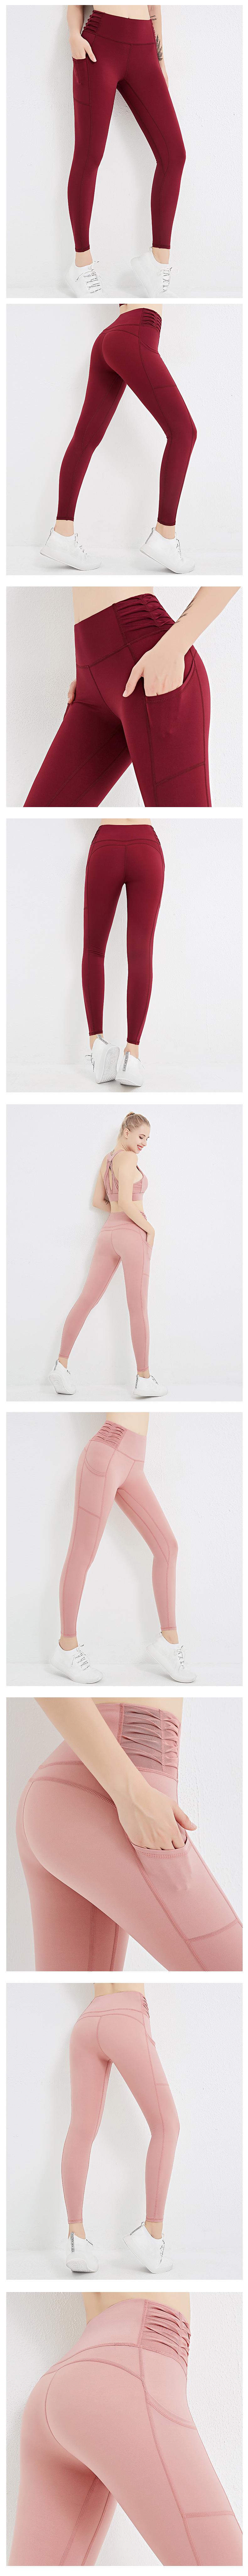 high waisted tight yoga side seam ruching flex legging yoga pants with side pockets